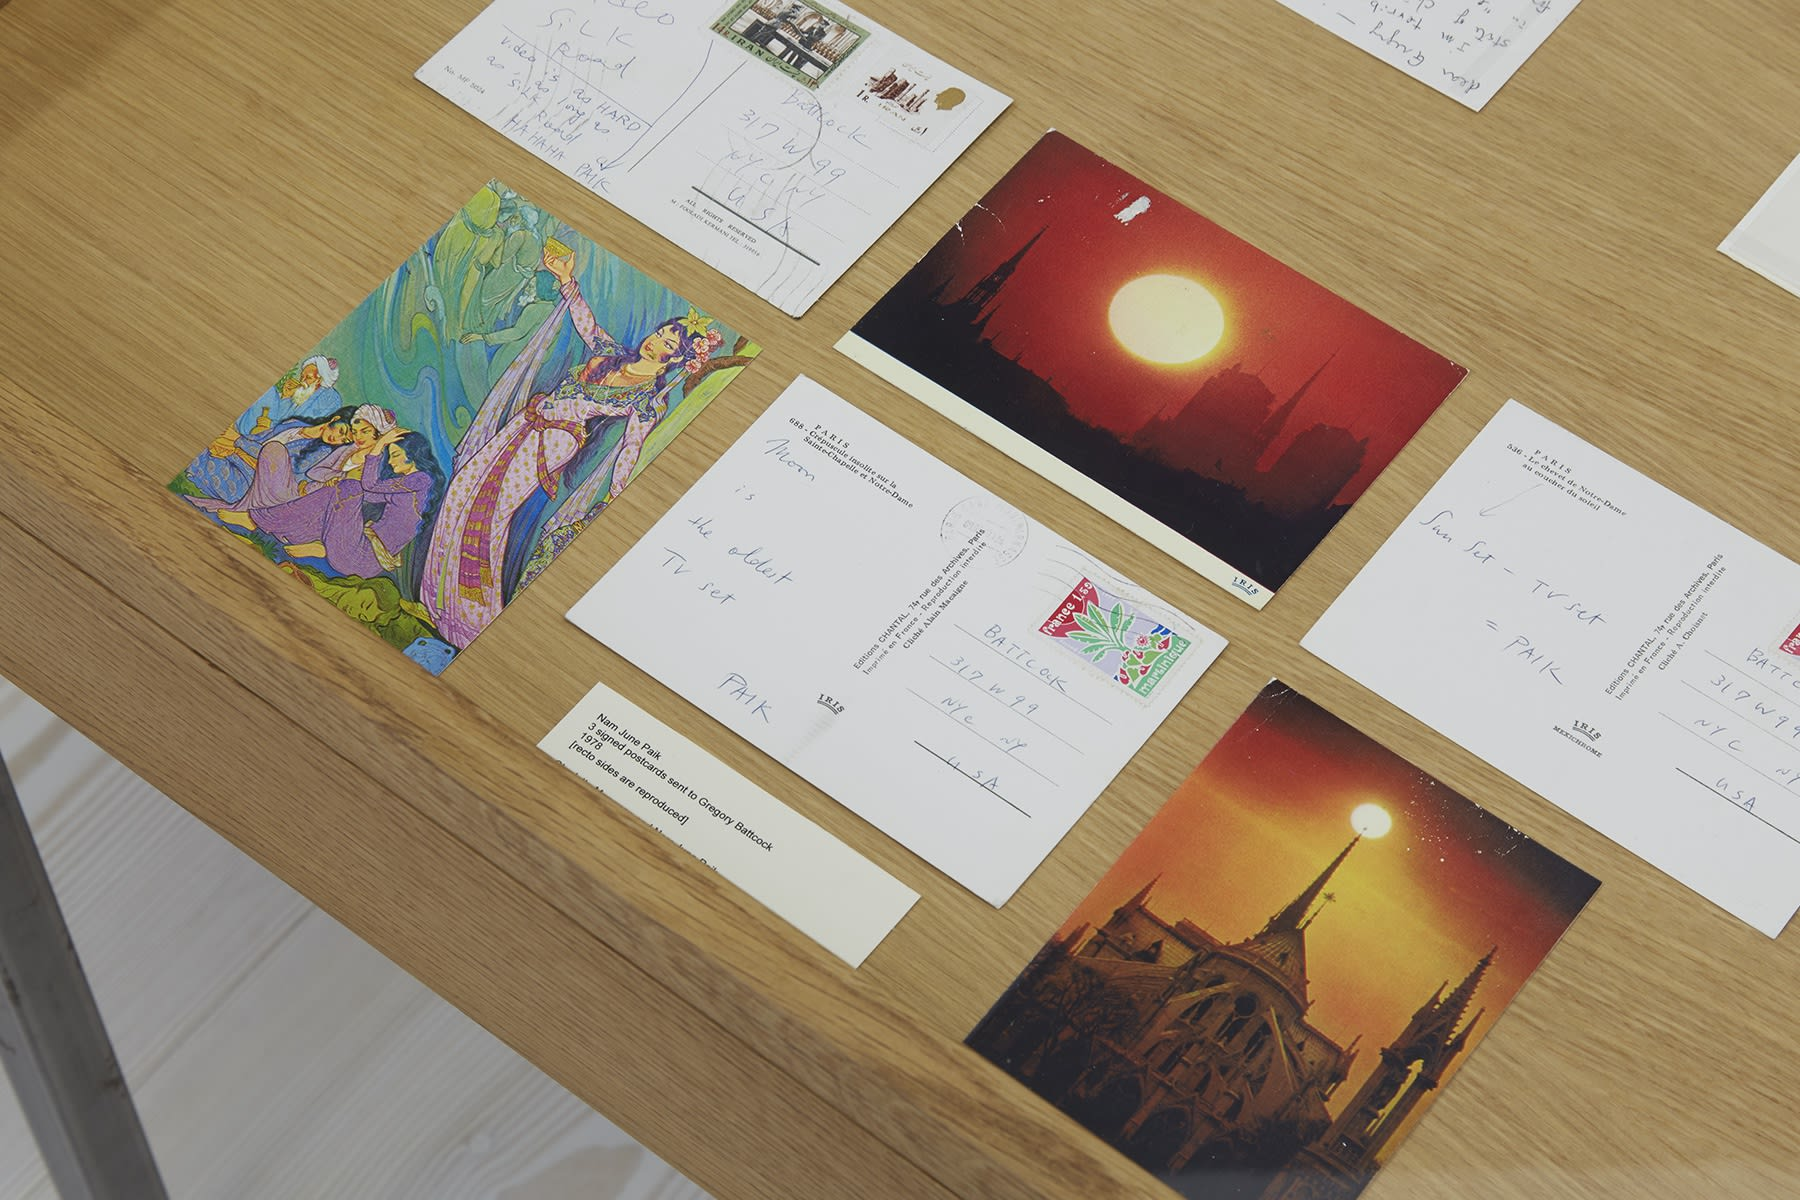 Several postcards, with writing, drawings, and images of sunsets, lie in a display case.